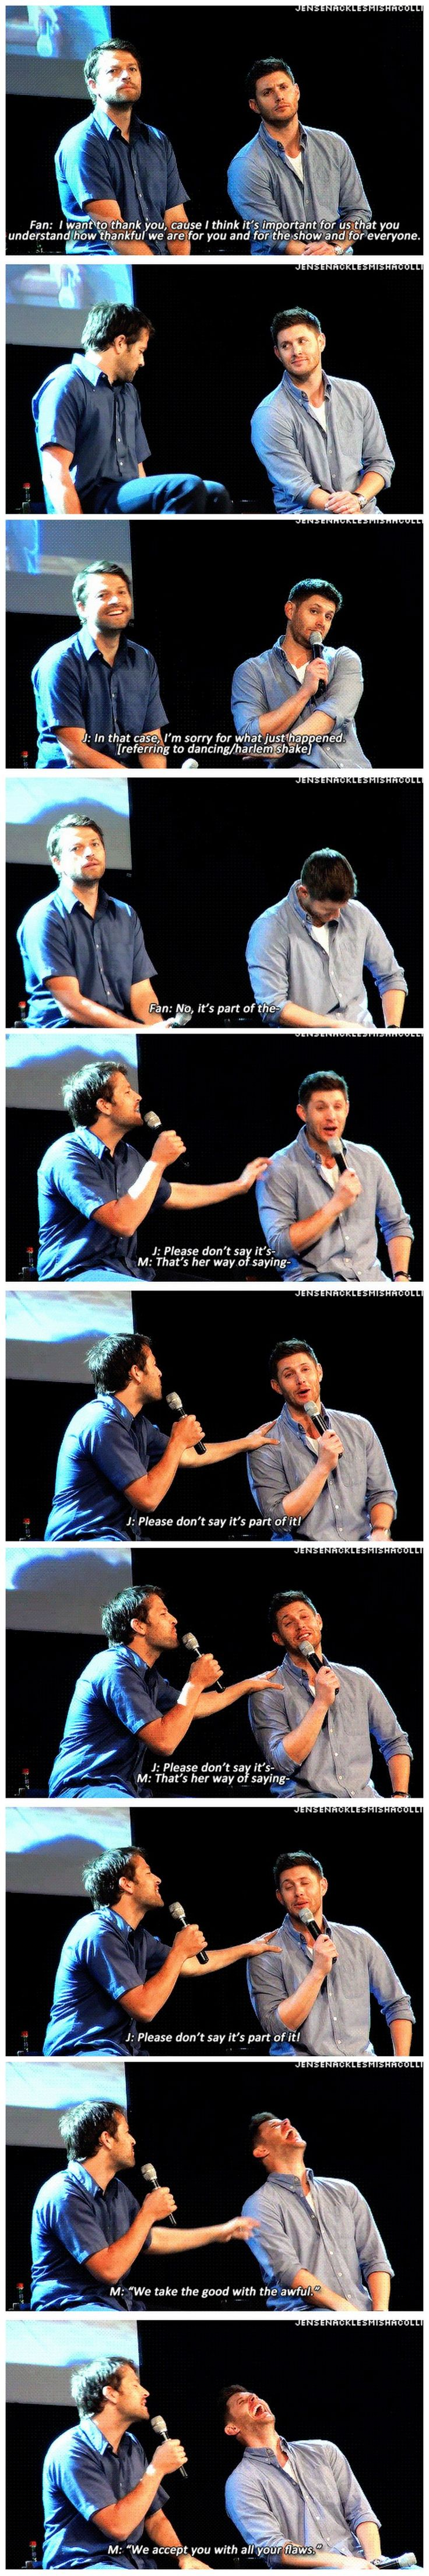 [gifset] After the Harlem Shake ... Jensen's embarrassment kicks in ♥ #JibCon14 #Jensen #Misha